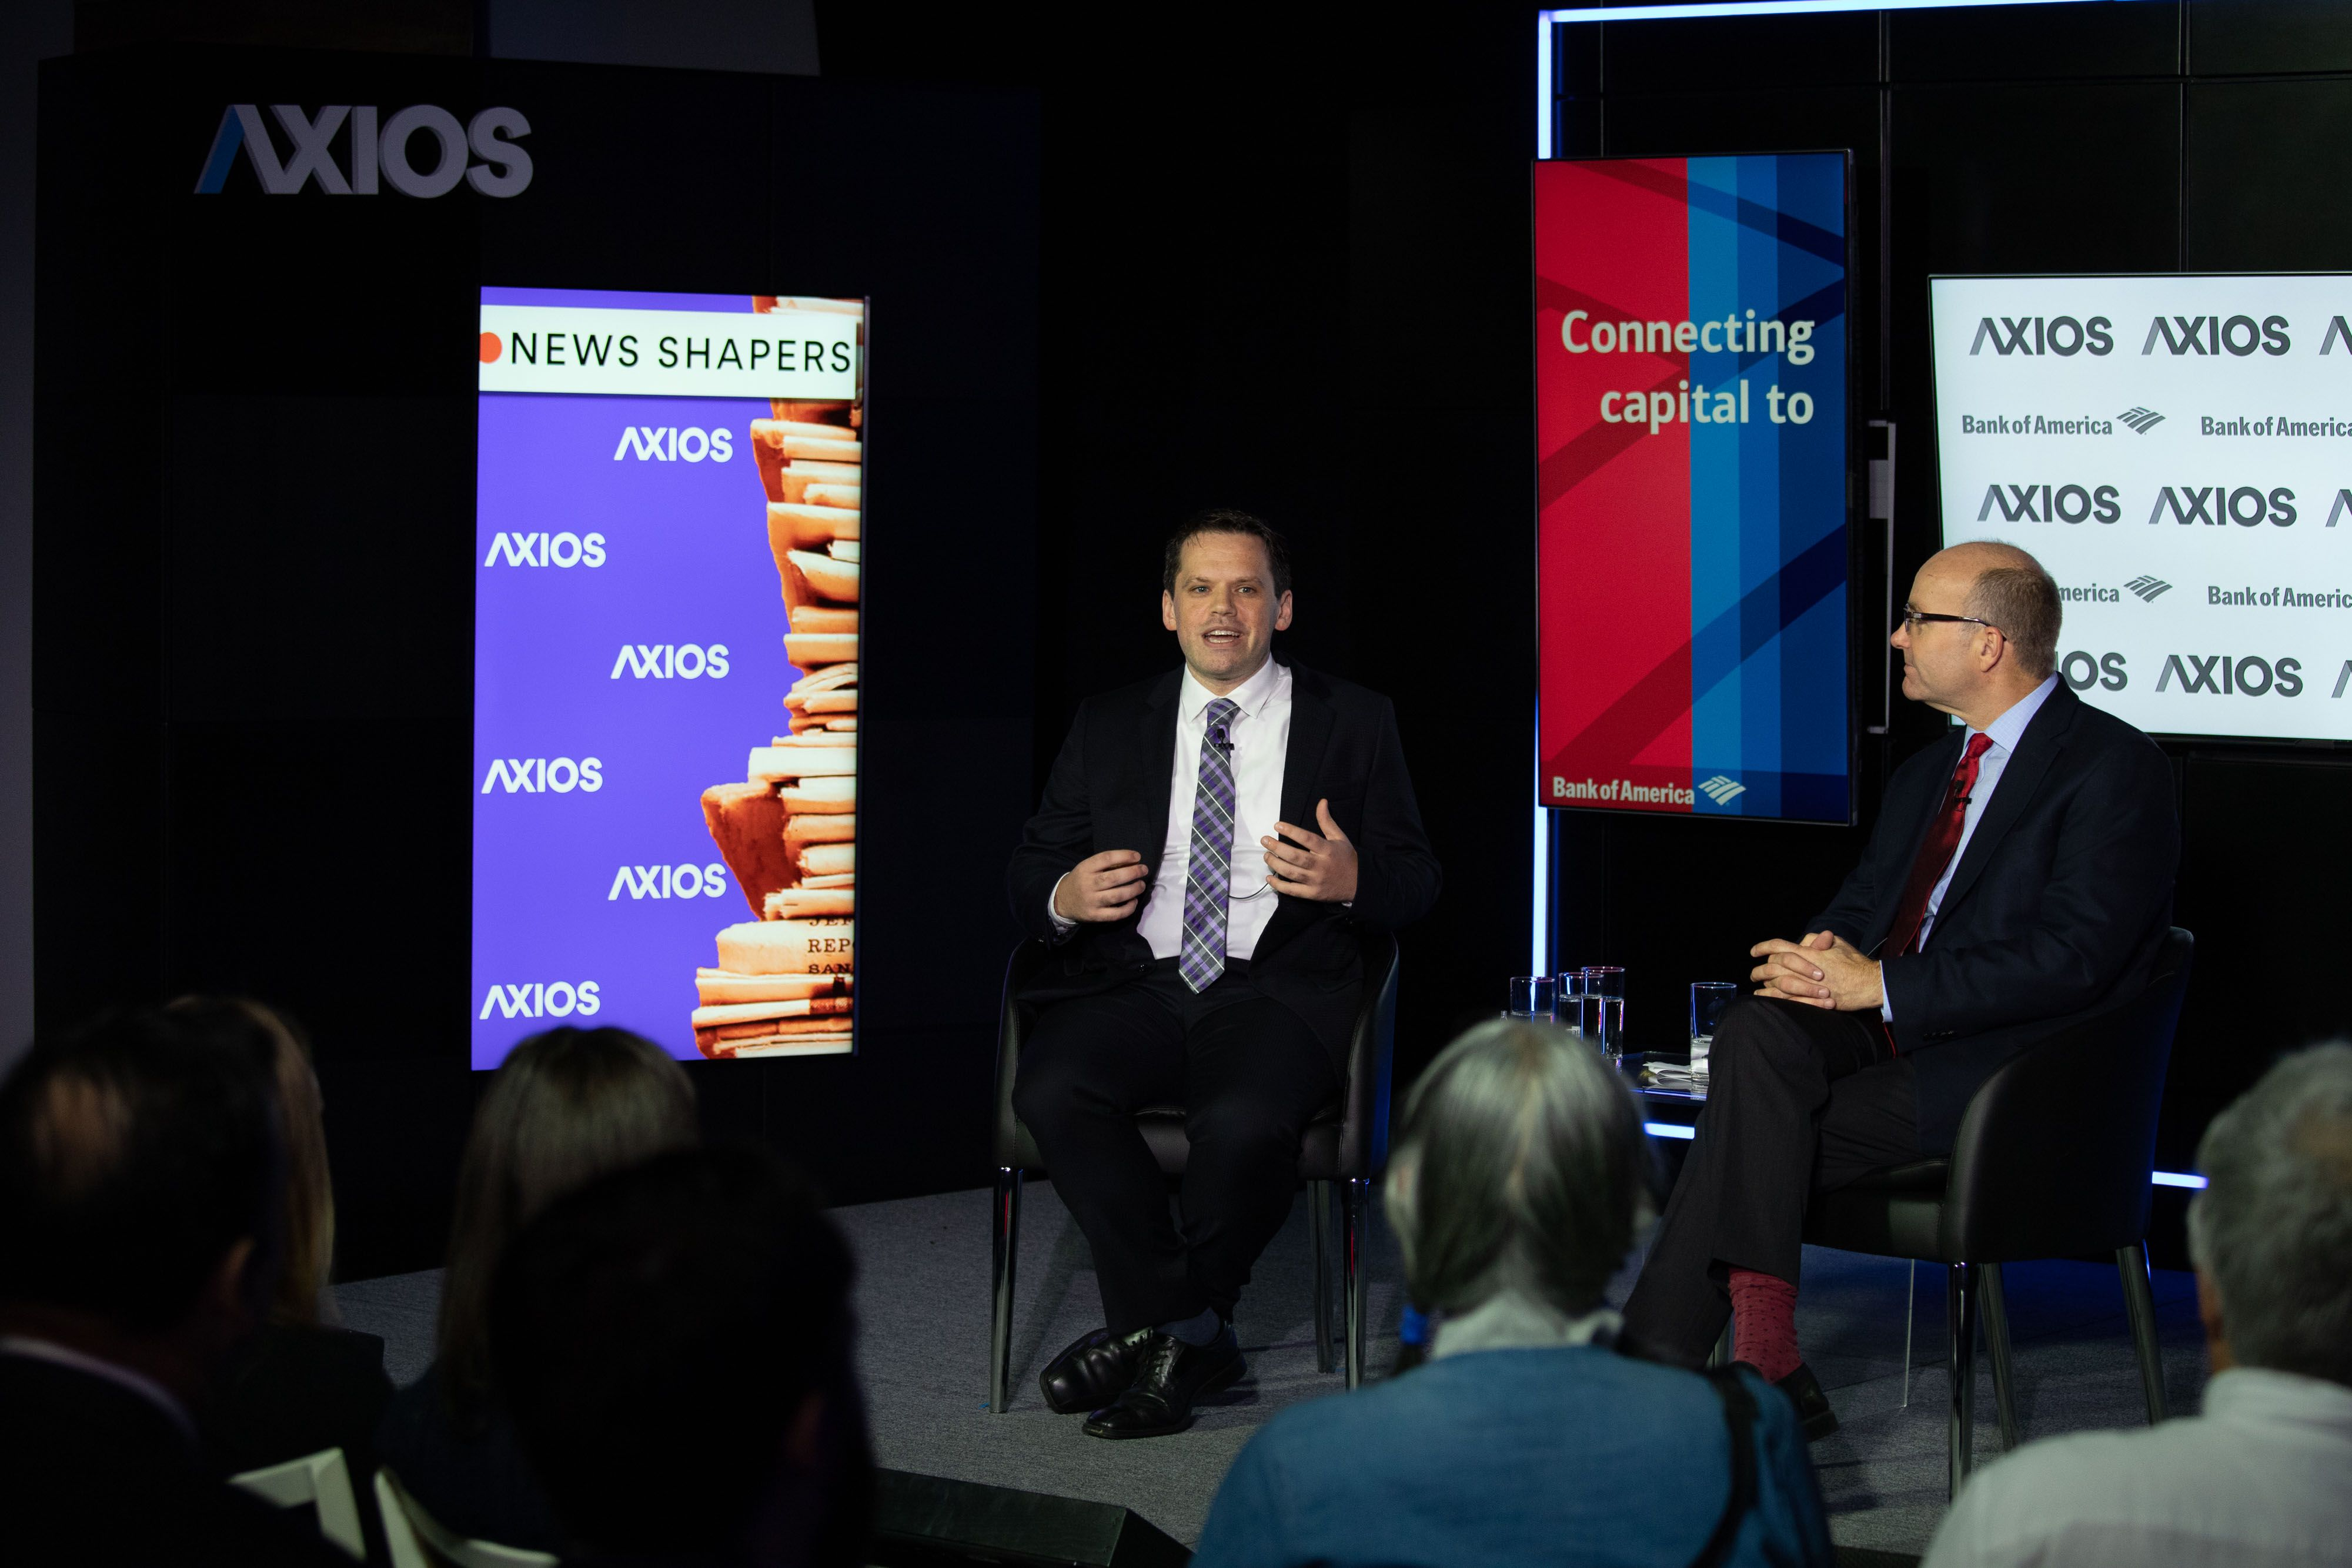 American Vaping Association President Gregory Conley being interviewed by Mike on the Axios stage